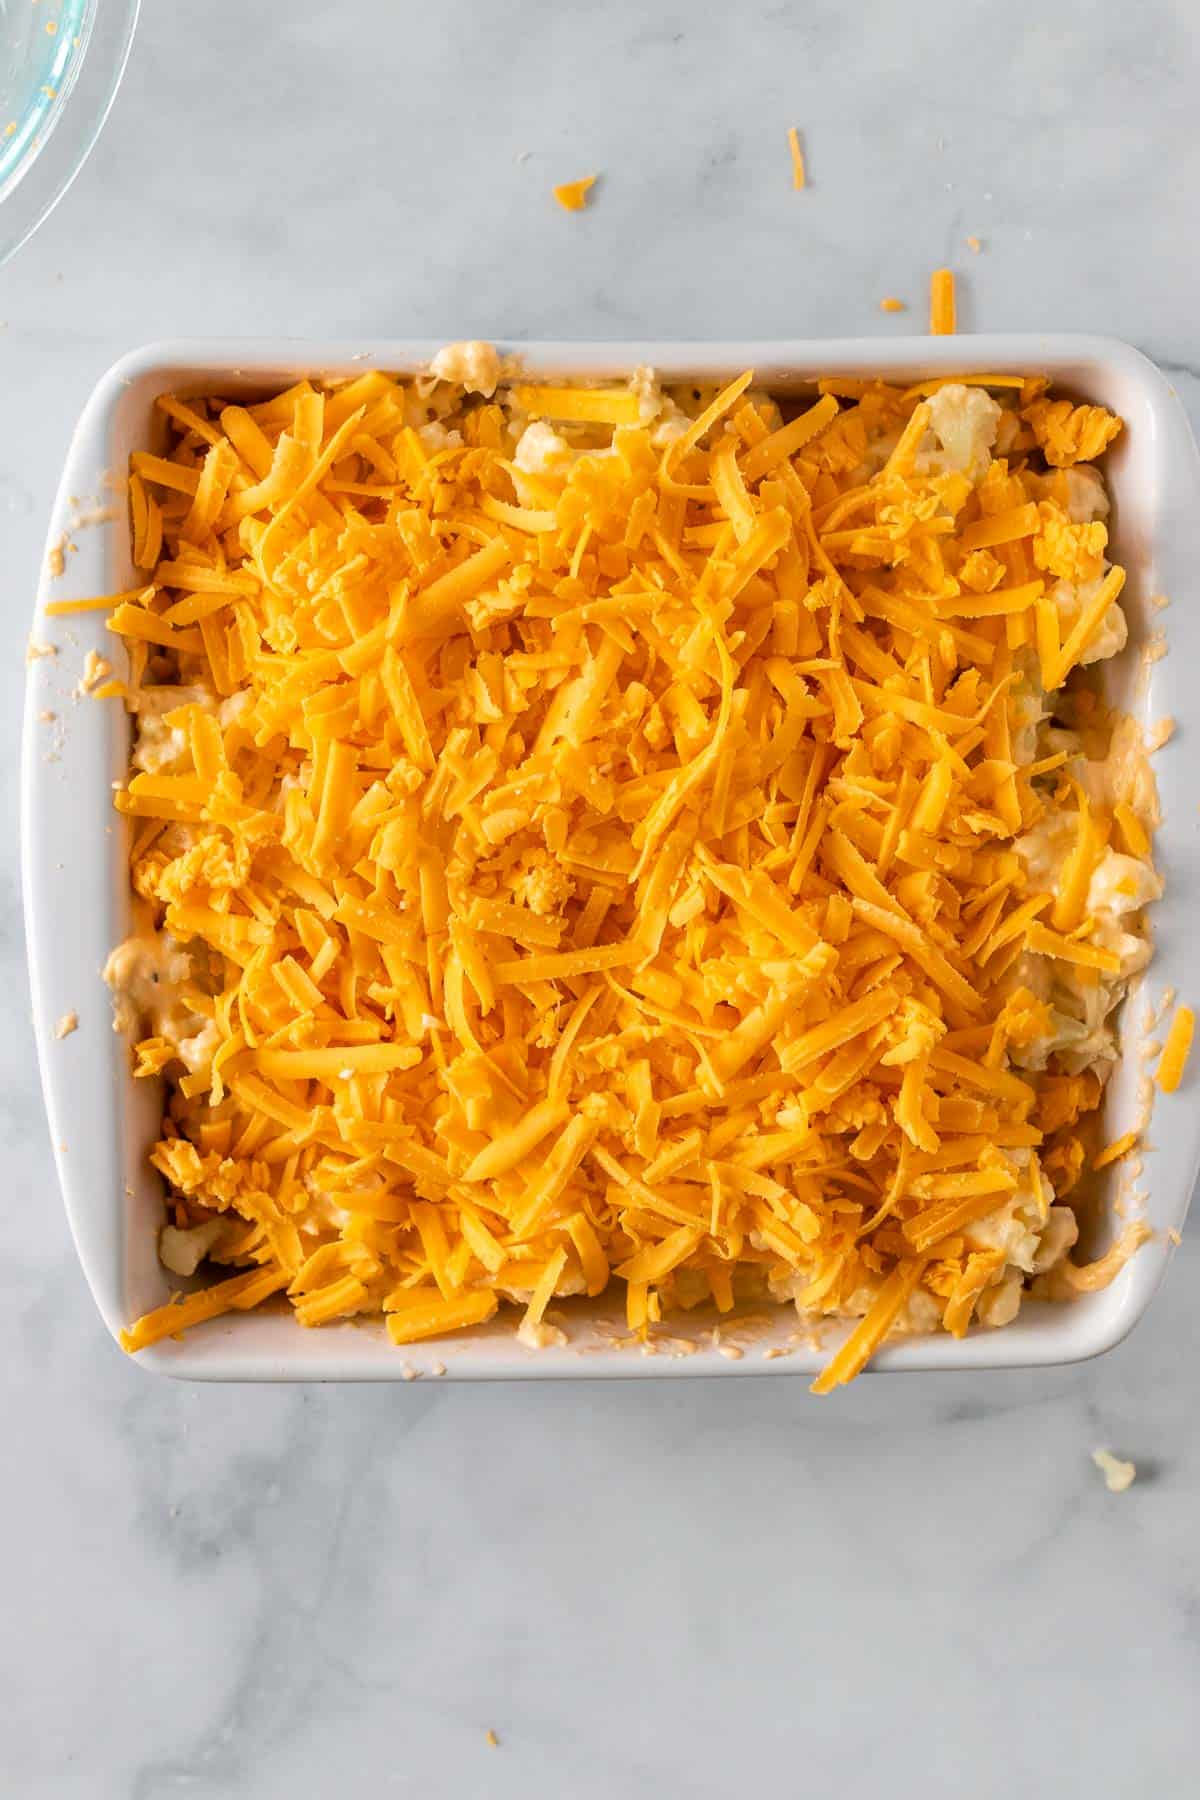 Cheddar cheese on top of the unbaked cauliflower and cheese mixture